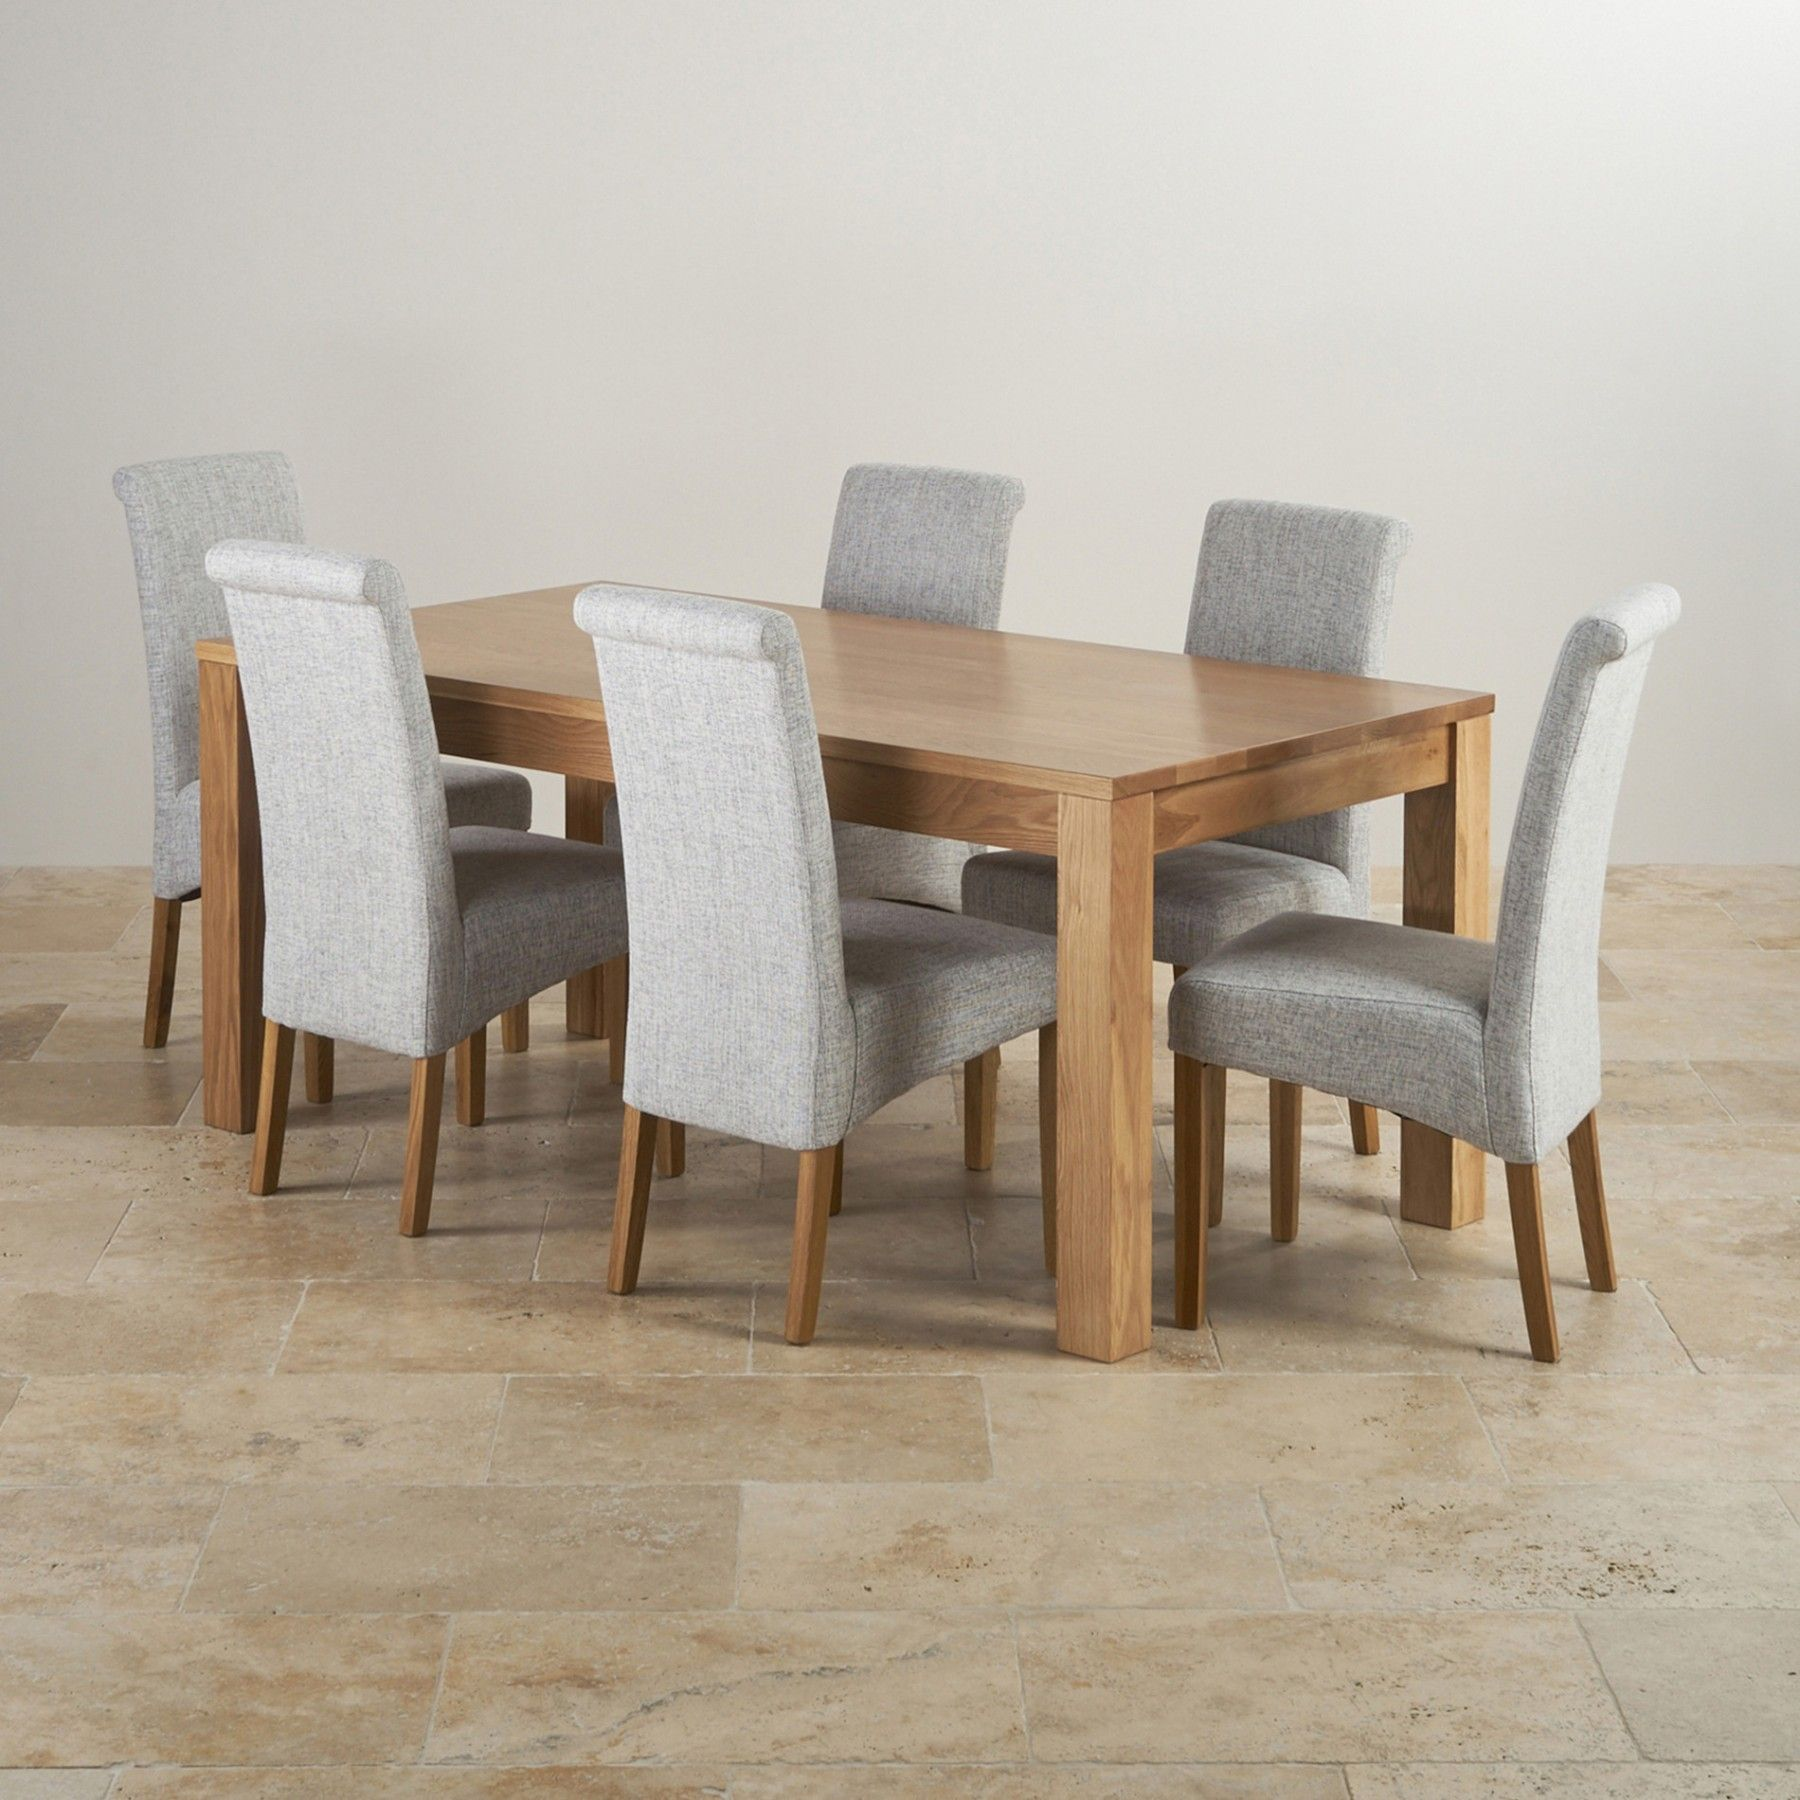 Oakdale Natural Solid Oak Dining Set 6ft Table With 6 Scroll Back Chairs In Plain Gray Fabric Oak Dining Sets Oak Furniture Land Luxury Dining Room